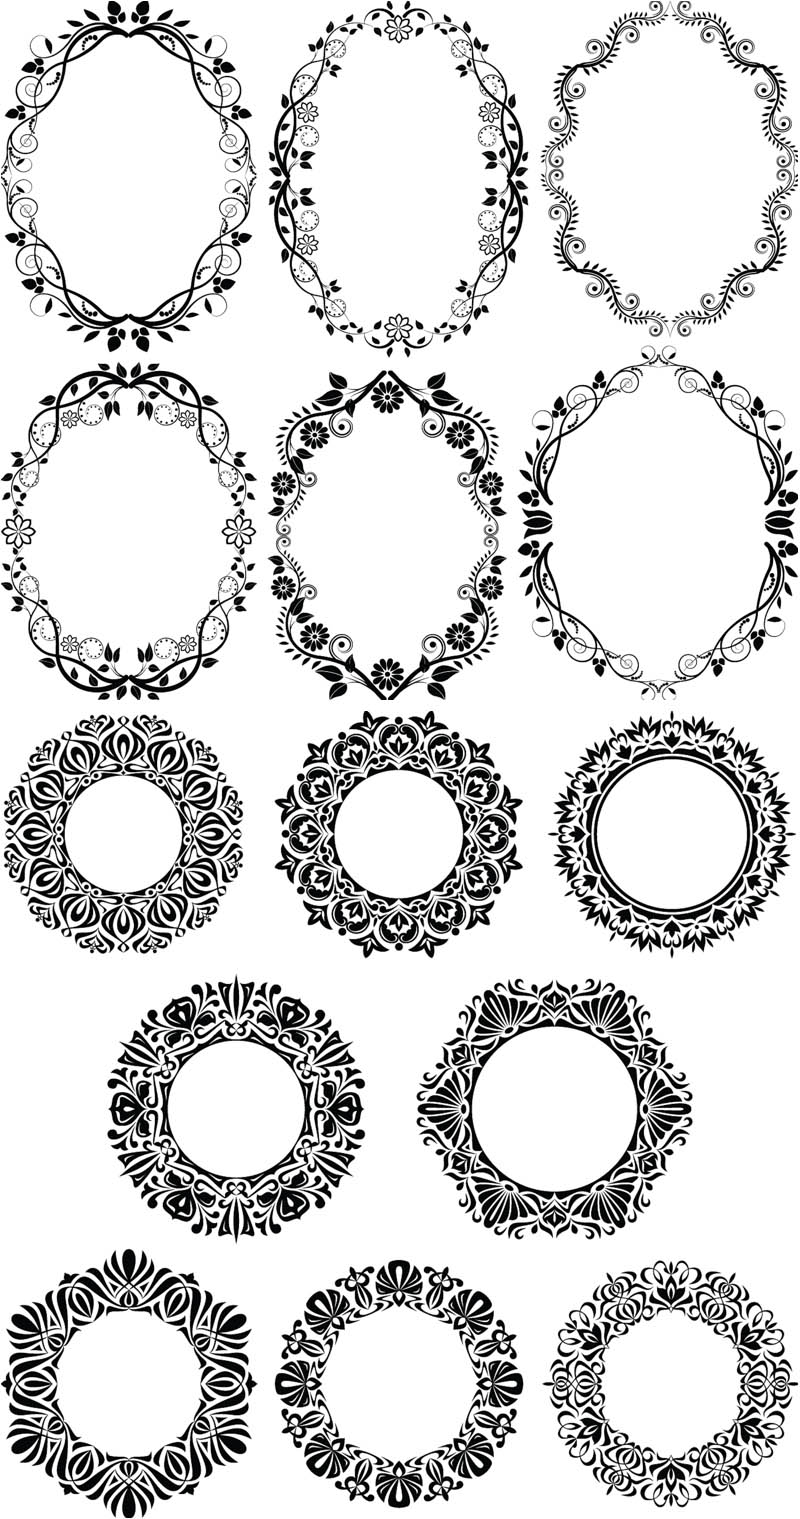 10 Free Vector Ornate Circle Frame Images